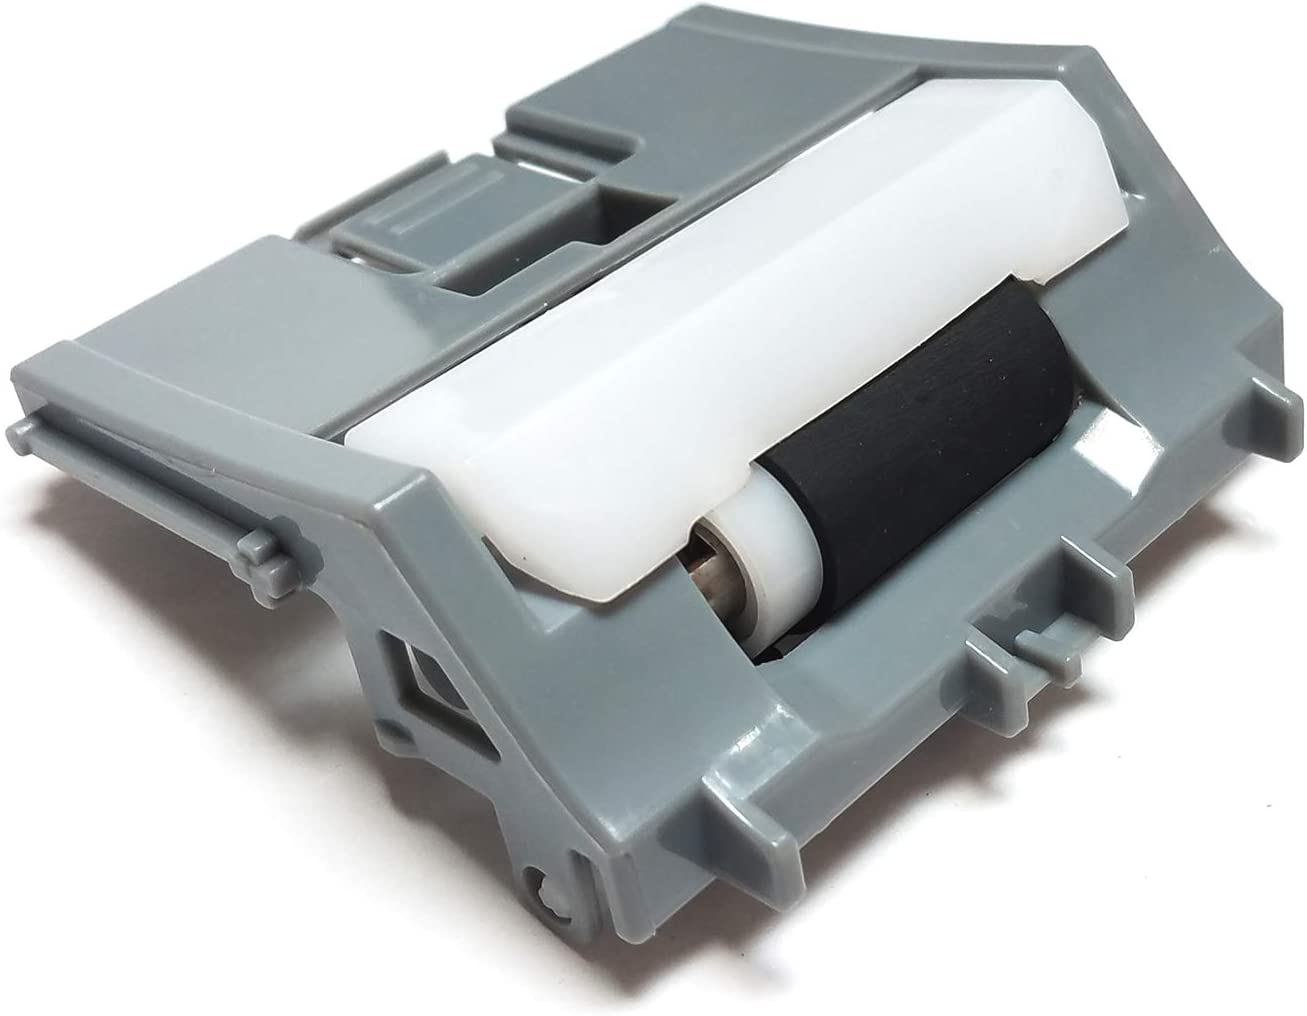 Altru Print F2A68-67913-AP Tray 2-5 Roller Maintenance Kit for HP Laserjet M501 Includes RM2-5741 Pickup Roller /& RM2-5745 Separation Roller M527 /& Tray 3 for M402 110V M506 M426 M427 1 Set